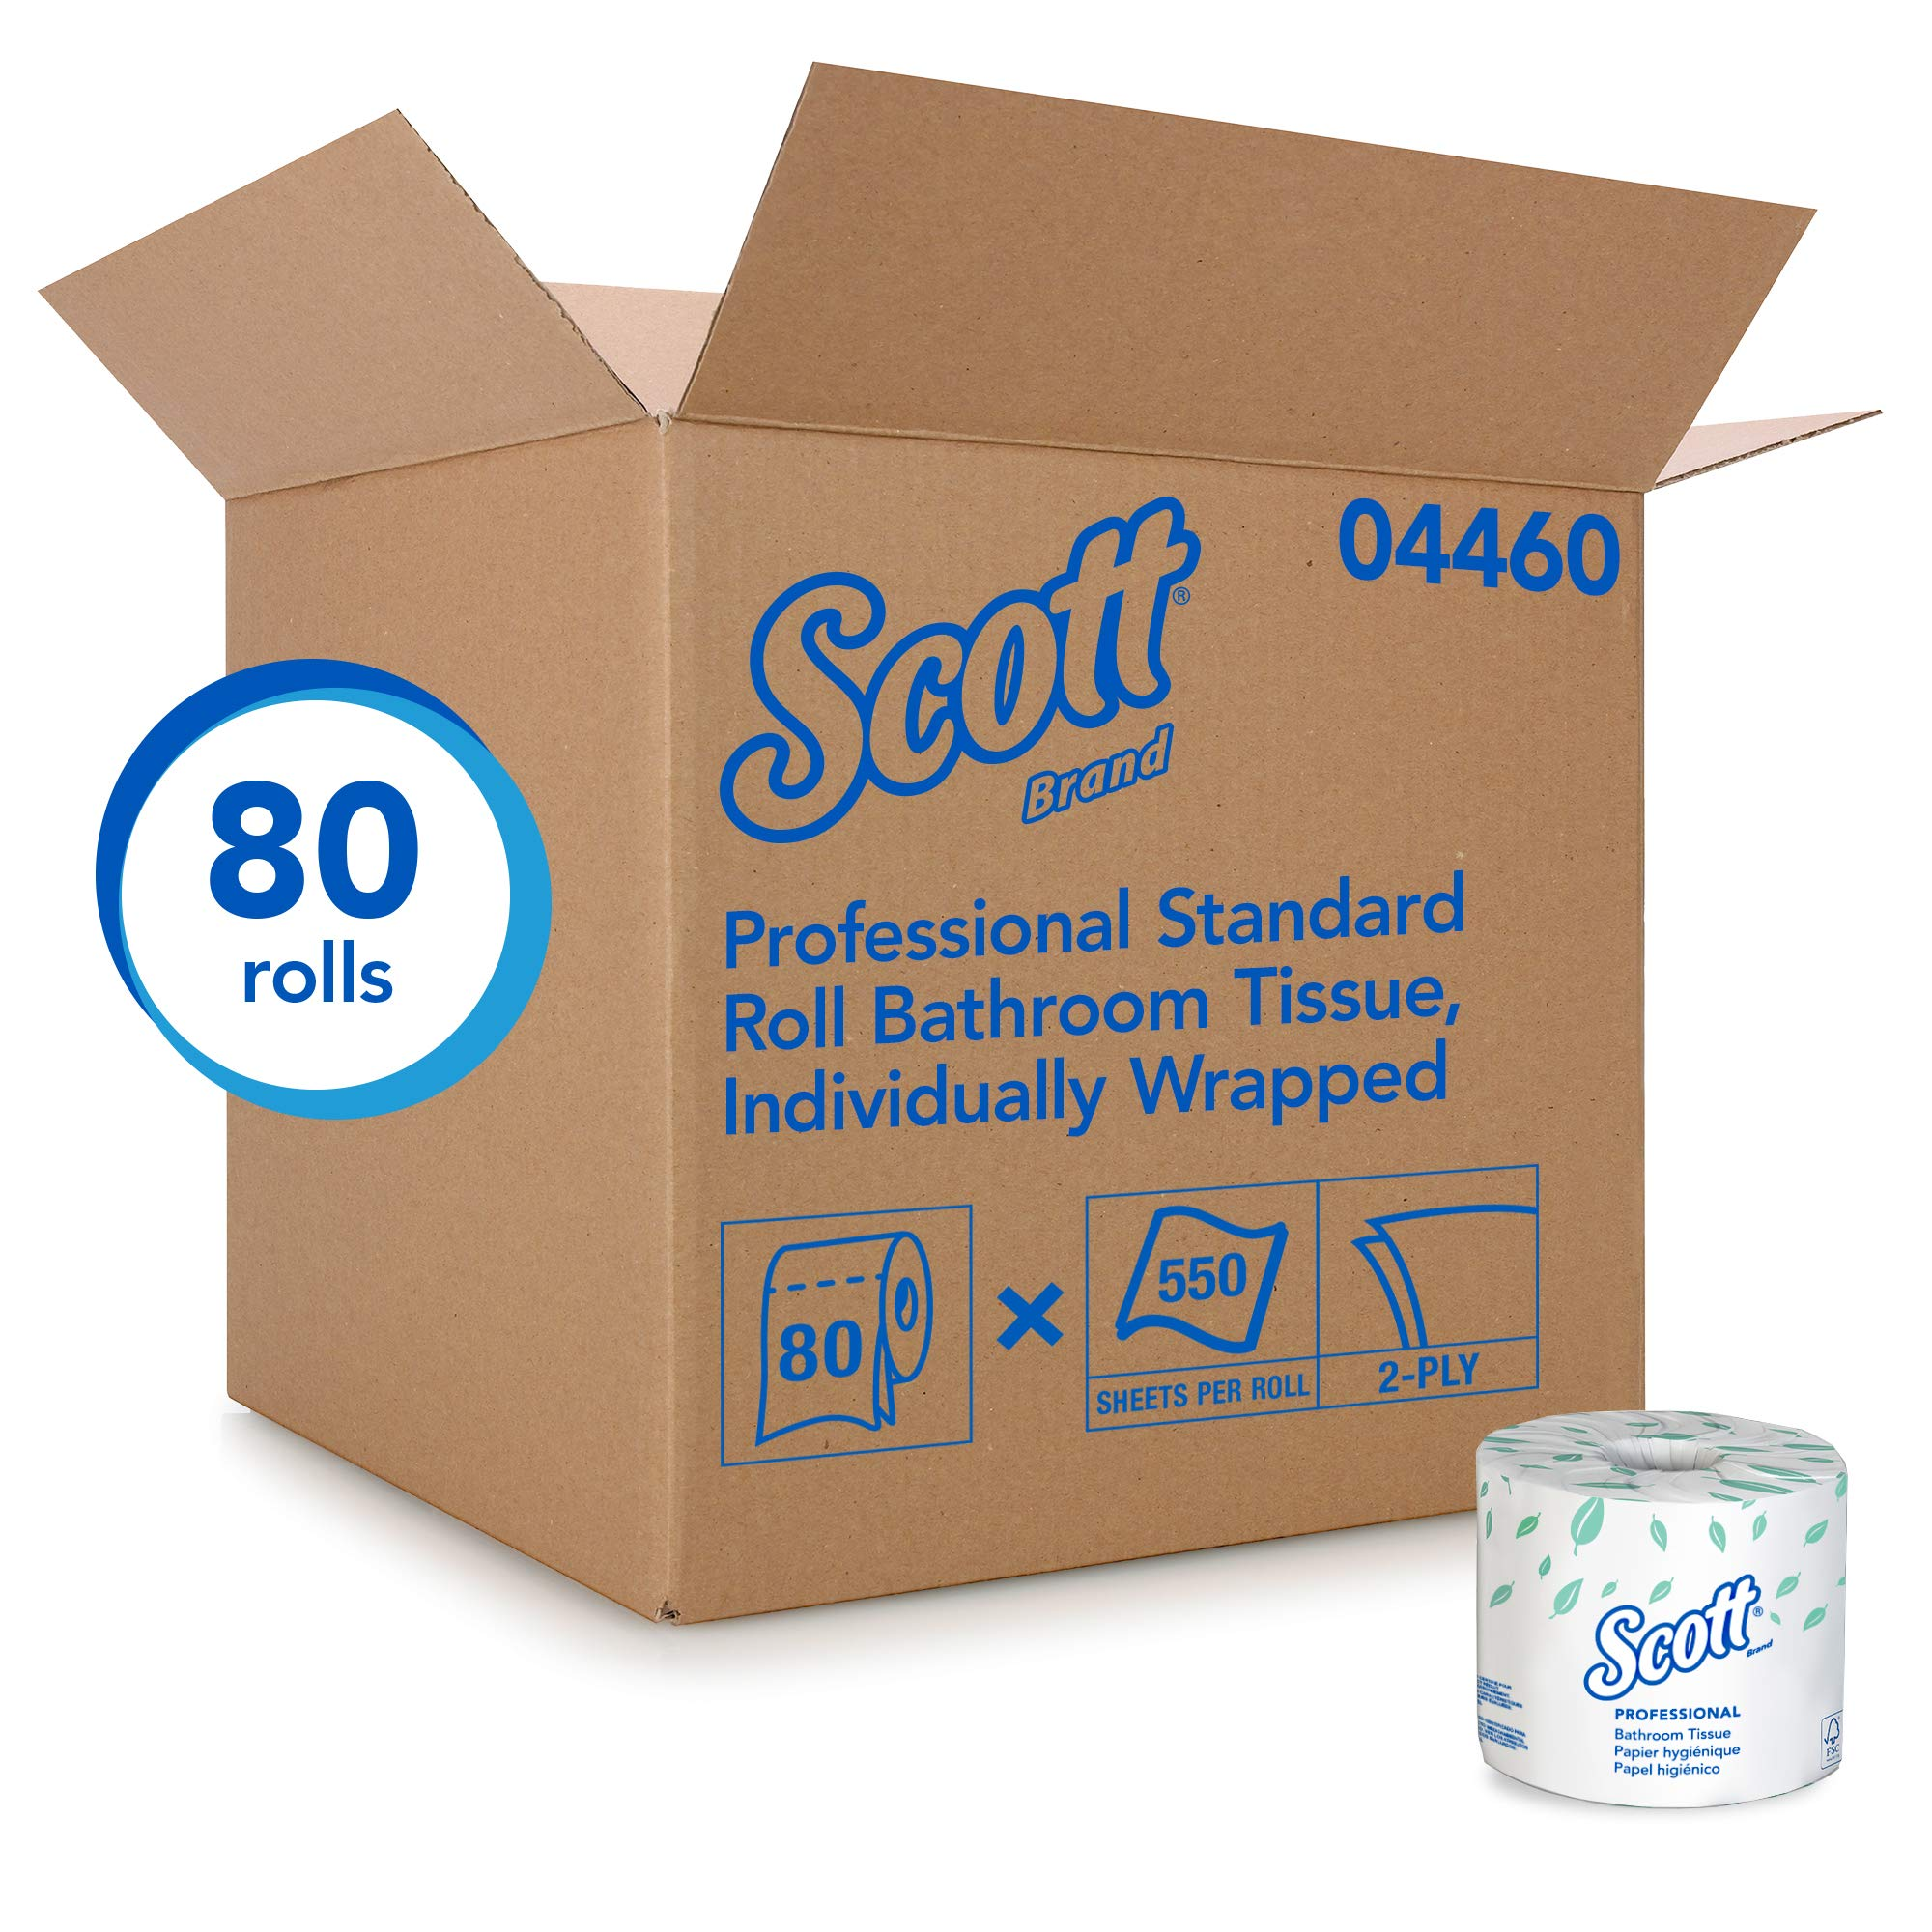 Scott Essential Professional Bulk Toilet Paper for Business (04460), Individually Wrapped Standard Rolls, 2-PLY, White, 80 Rolls / Case, 550 Sheets / Roll by Kimberly-Clark Professional